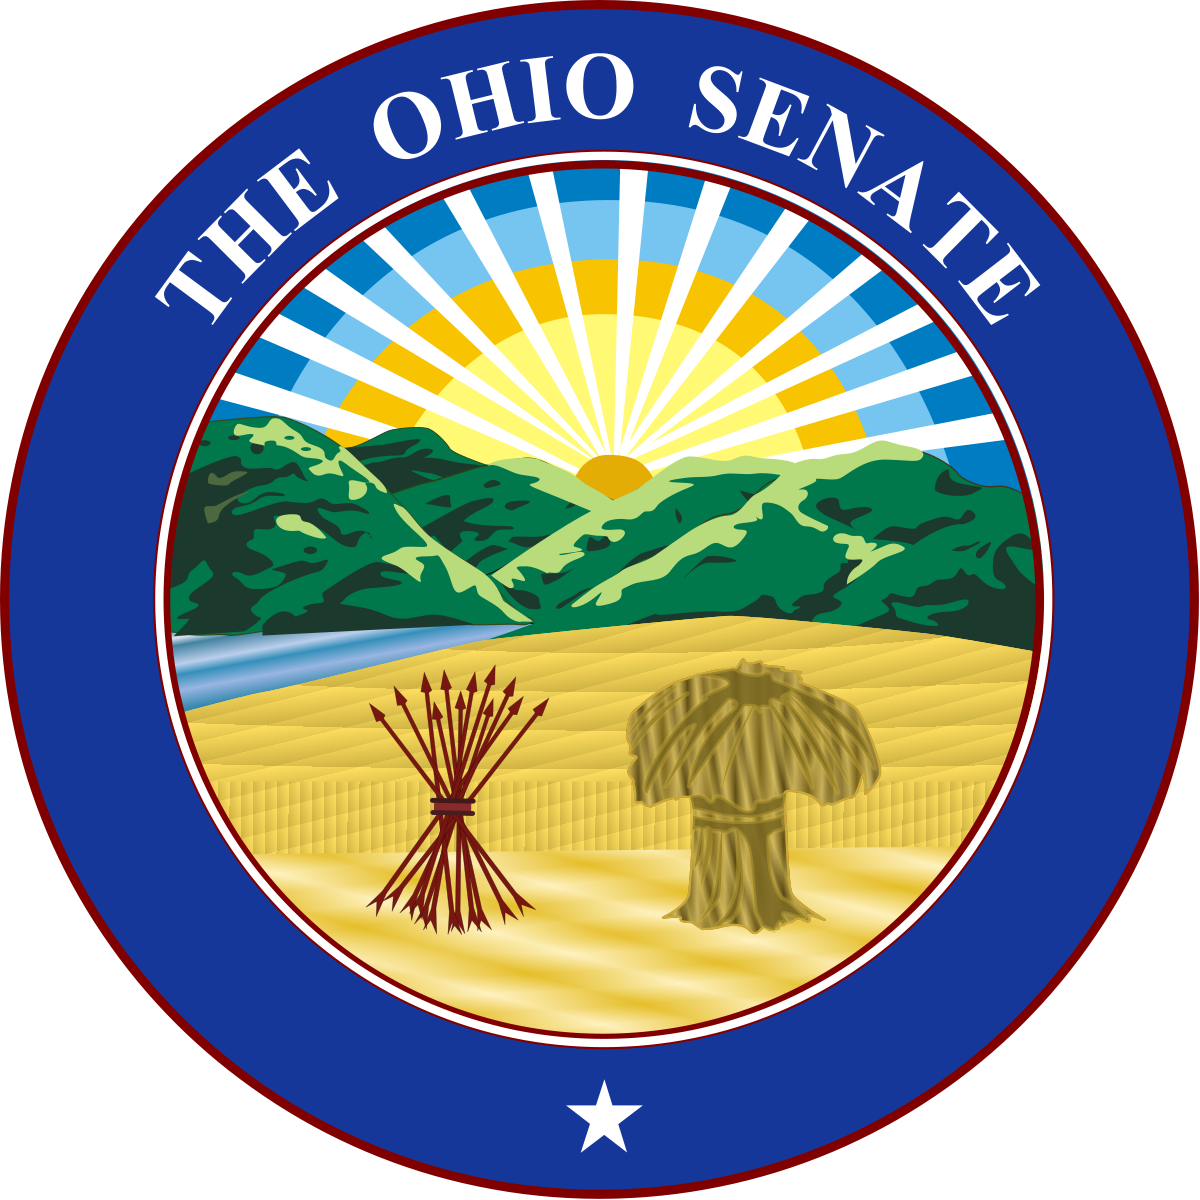 Ohio senate wikipedia . Voting clipart senator